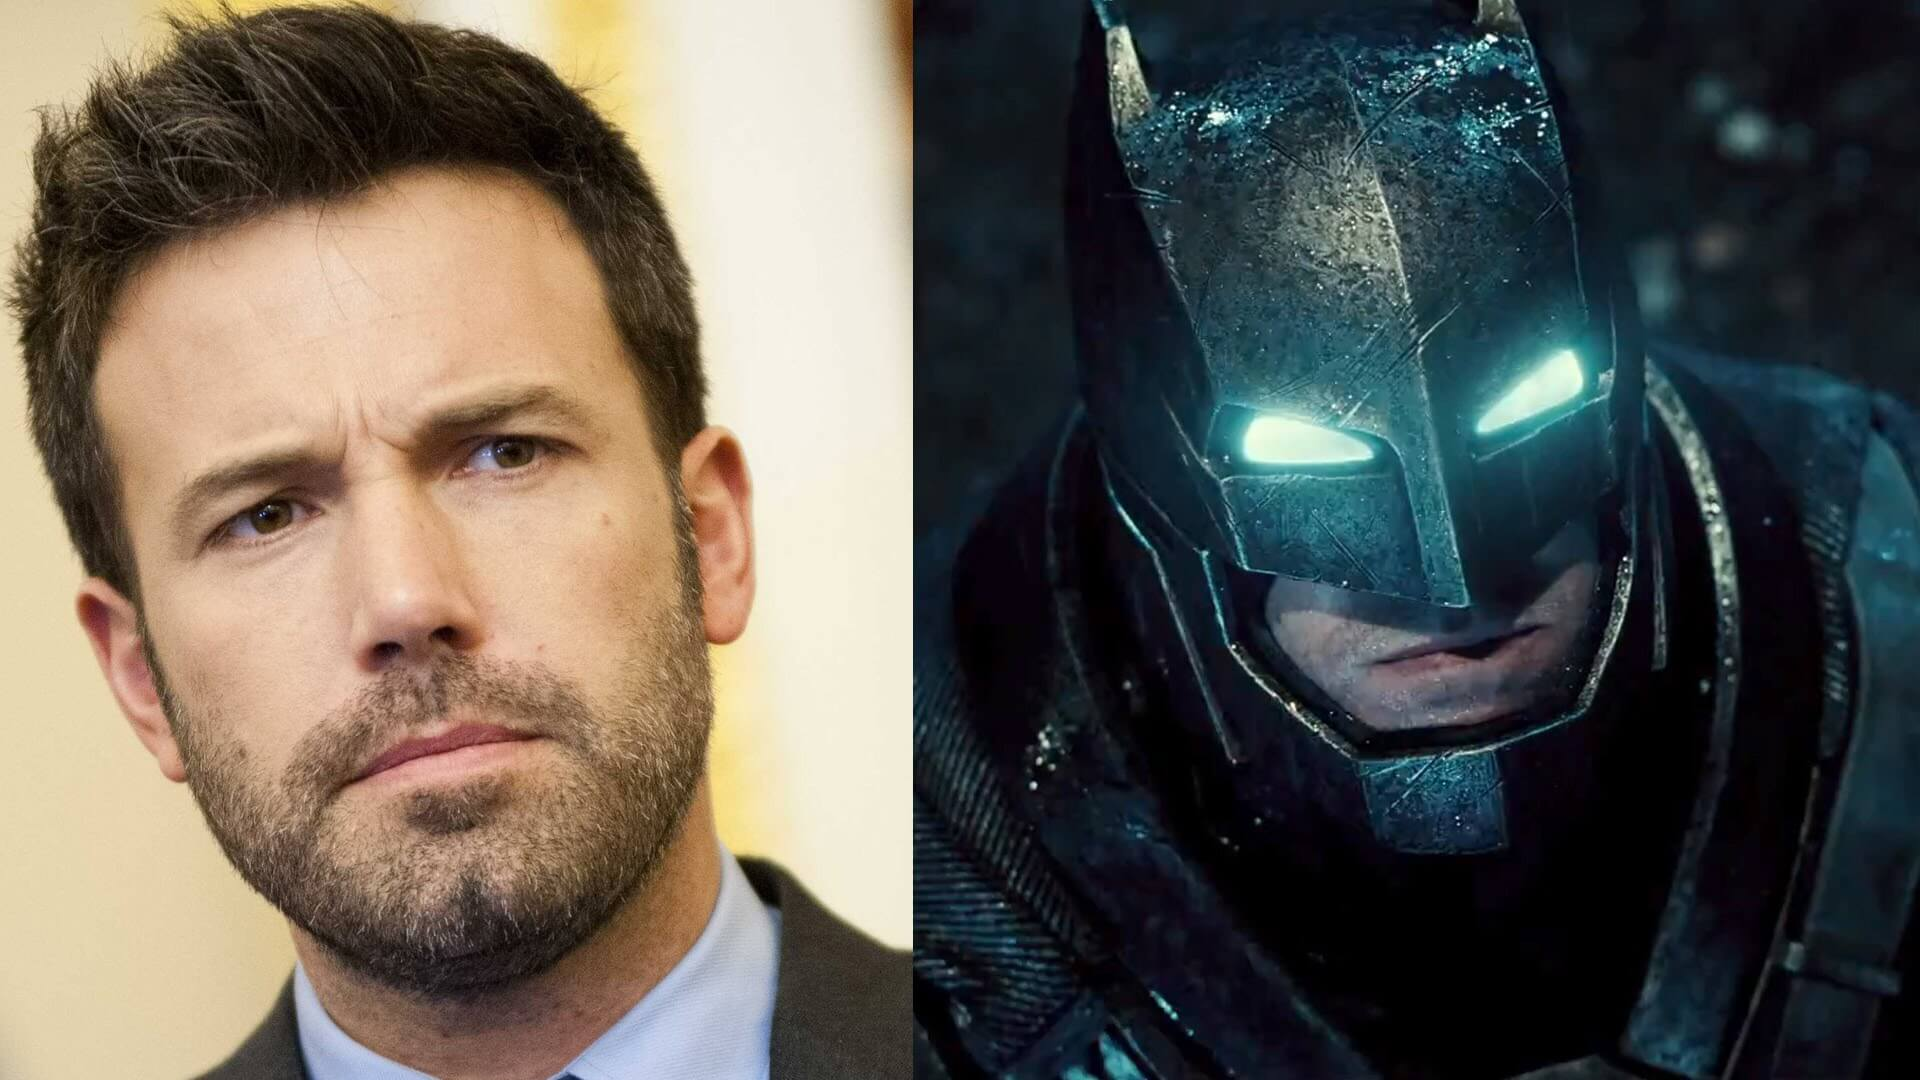 The Batman Star Ben Affleck